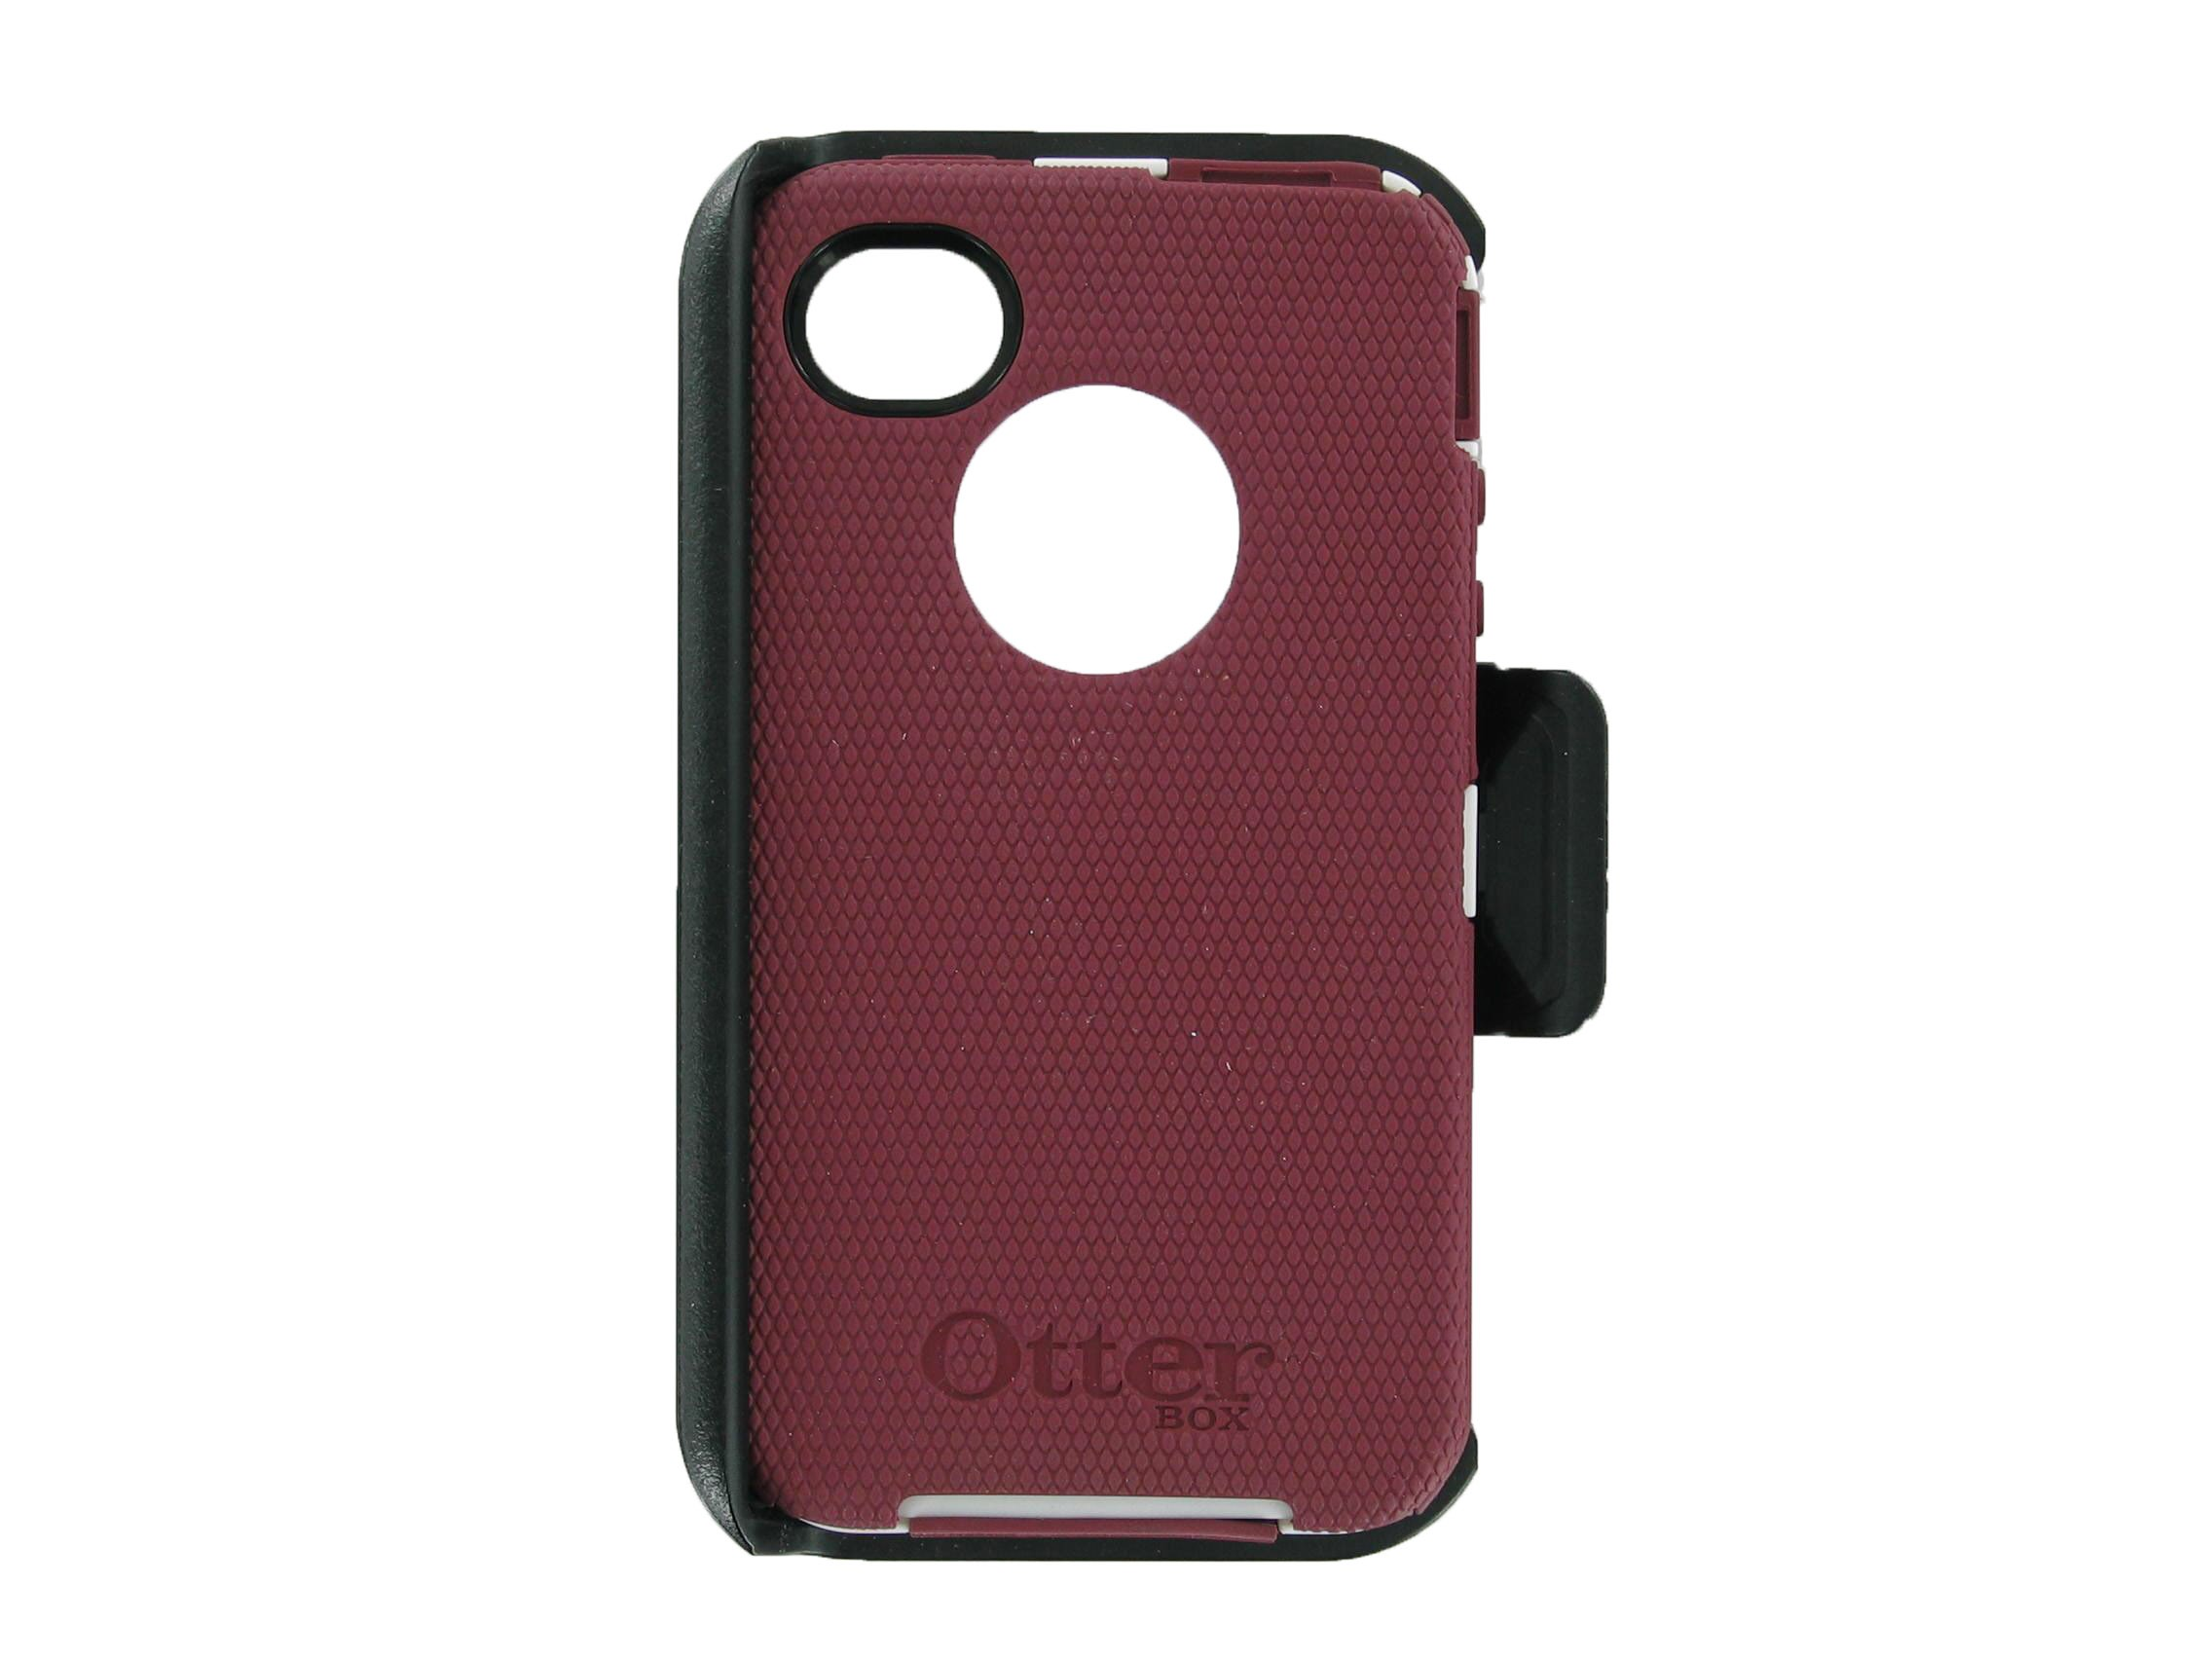 finest selection 35c10 5e7bd OtterBox Defender Series Case for iPhone 4S - Maroon / White